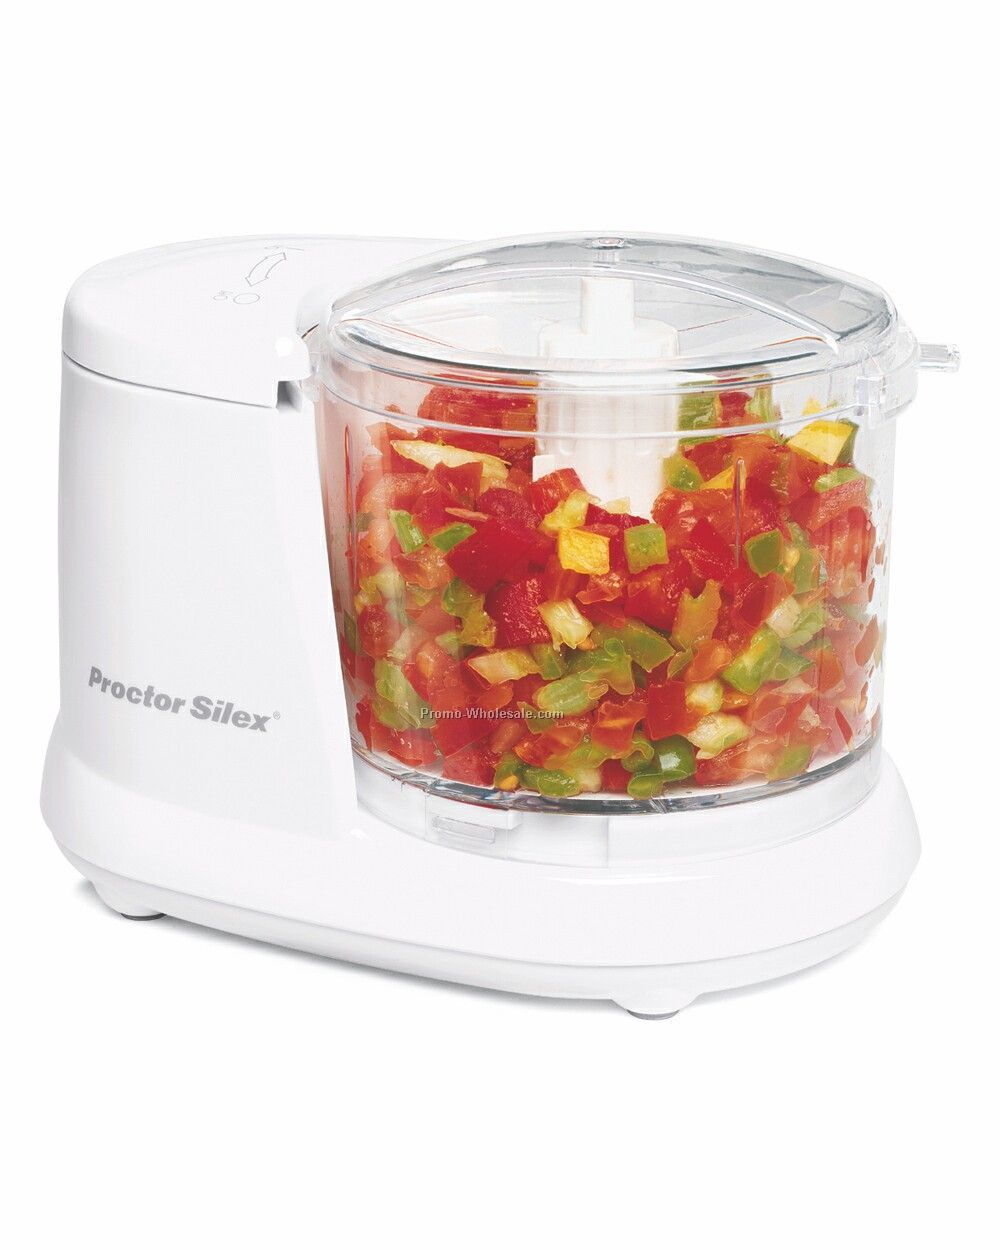 Hamilton Beach 1.5 Cup Food Chopper